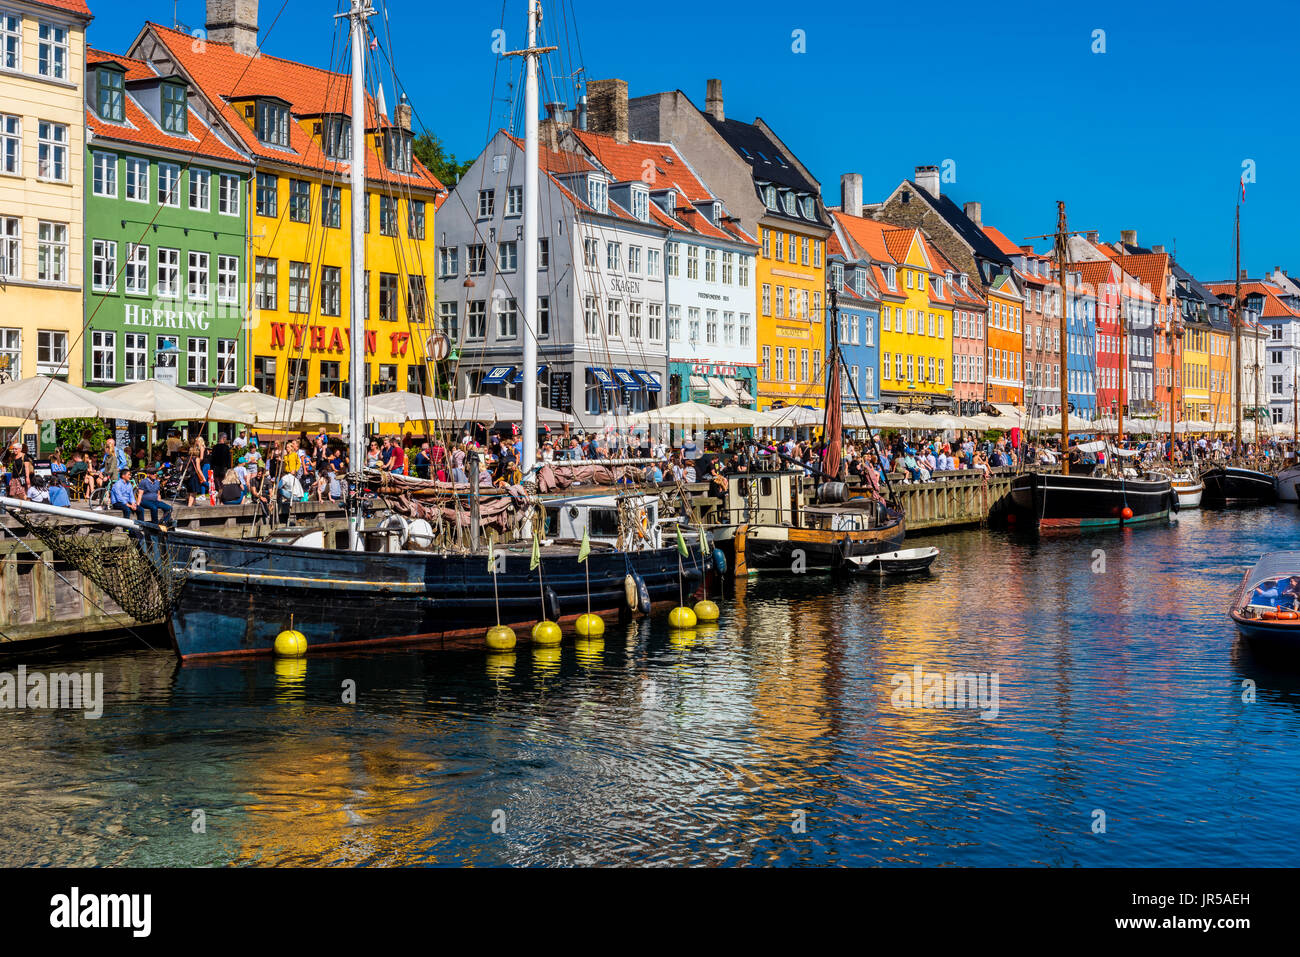 Et la promenade du port de Nyhavn à Copenhague, Danemark. Nyhavn est le plus célèbre monument de Copenhague. Photo Stock